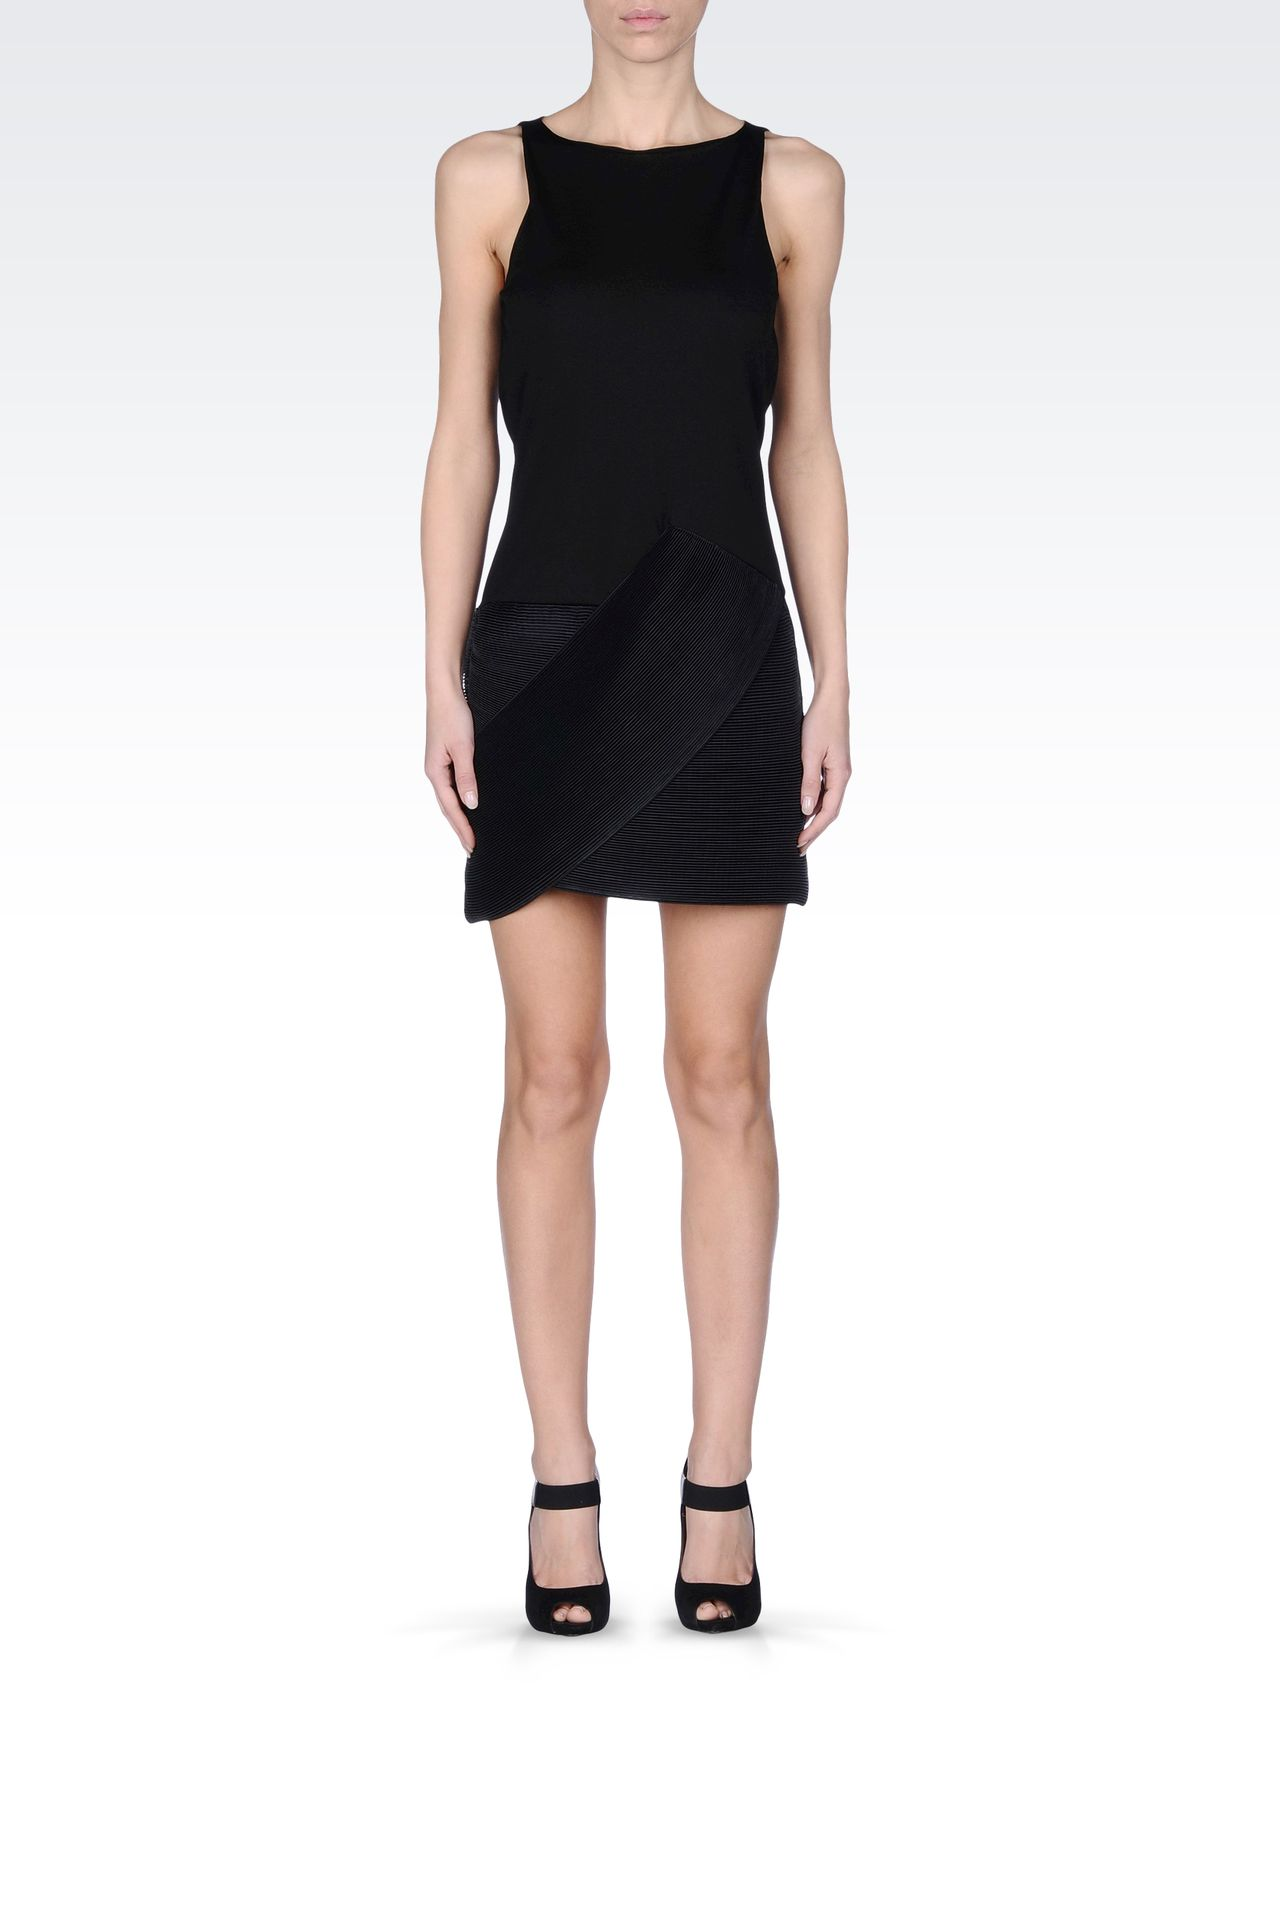 Emporio Armani Women Short Dress - VISCOSE DRESS WITH PLEATED MOTIF Emporio Armani Official Online Store